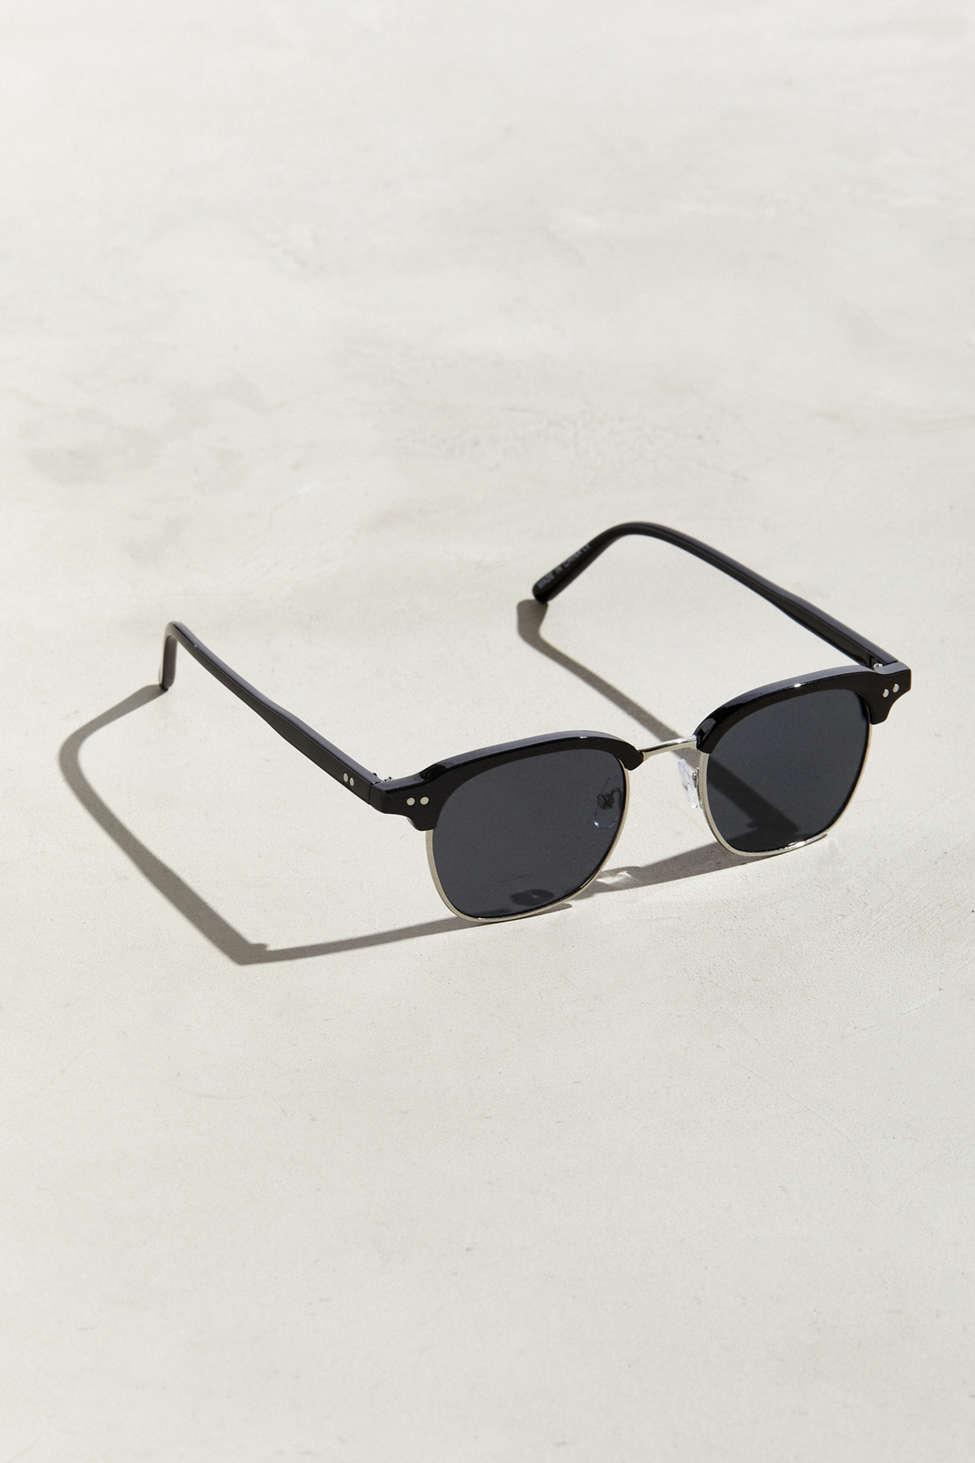 ba034a6a3a Lyst - Urban Outfitters Clyde Granddad Half-frame Sunglasses in ...